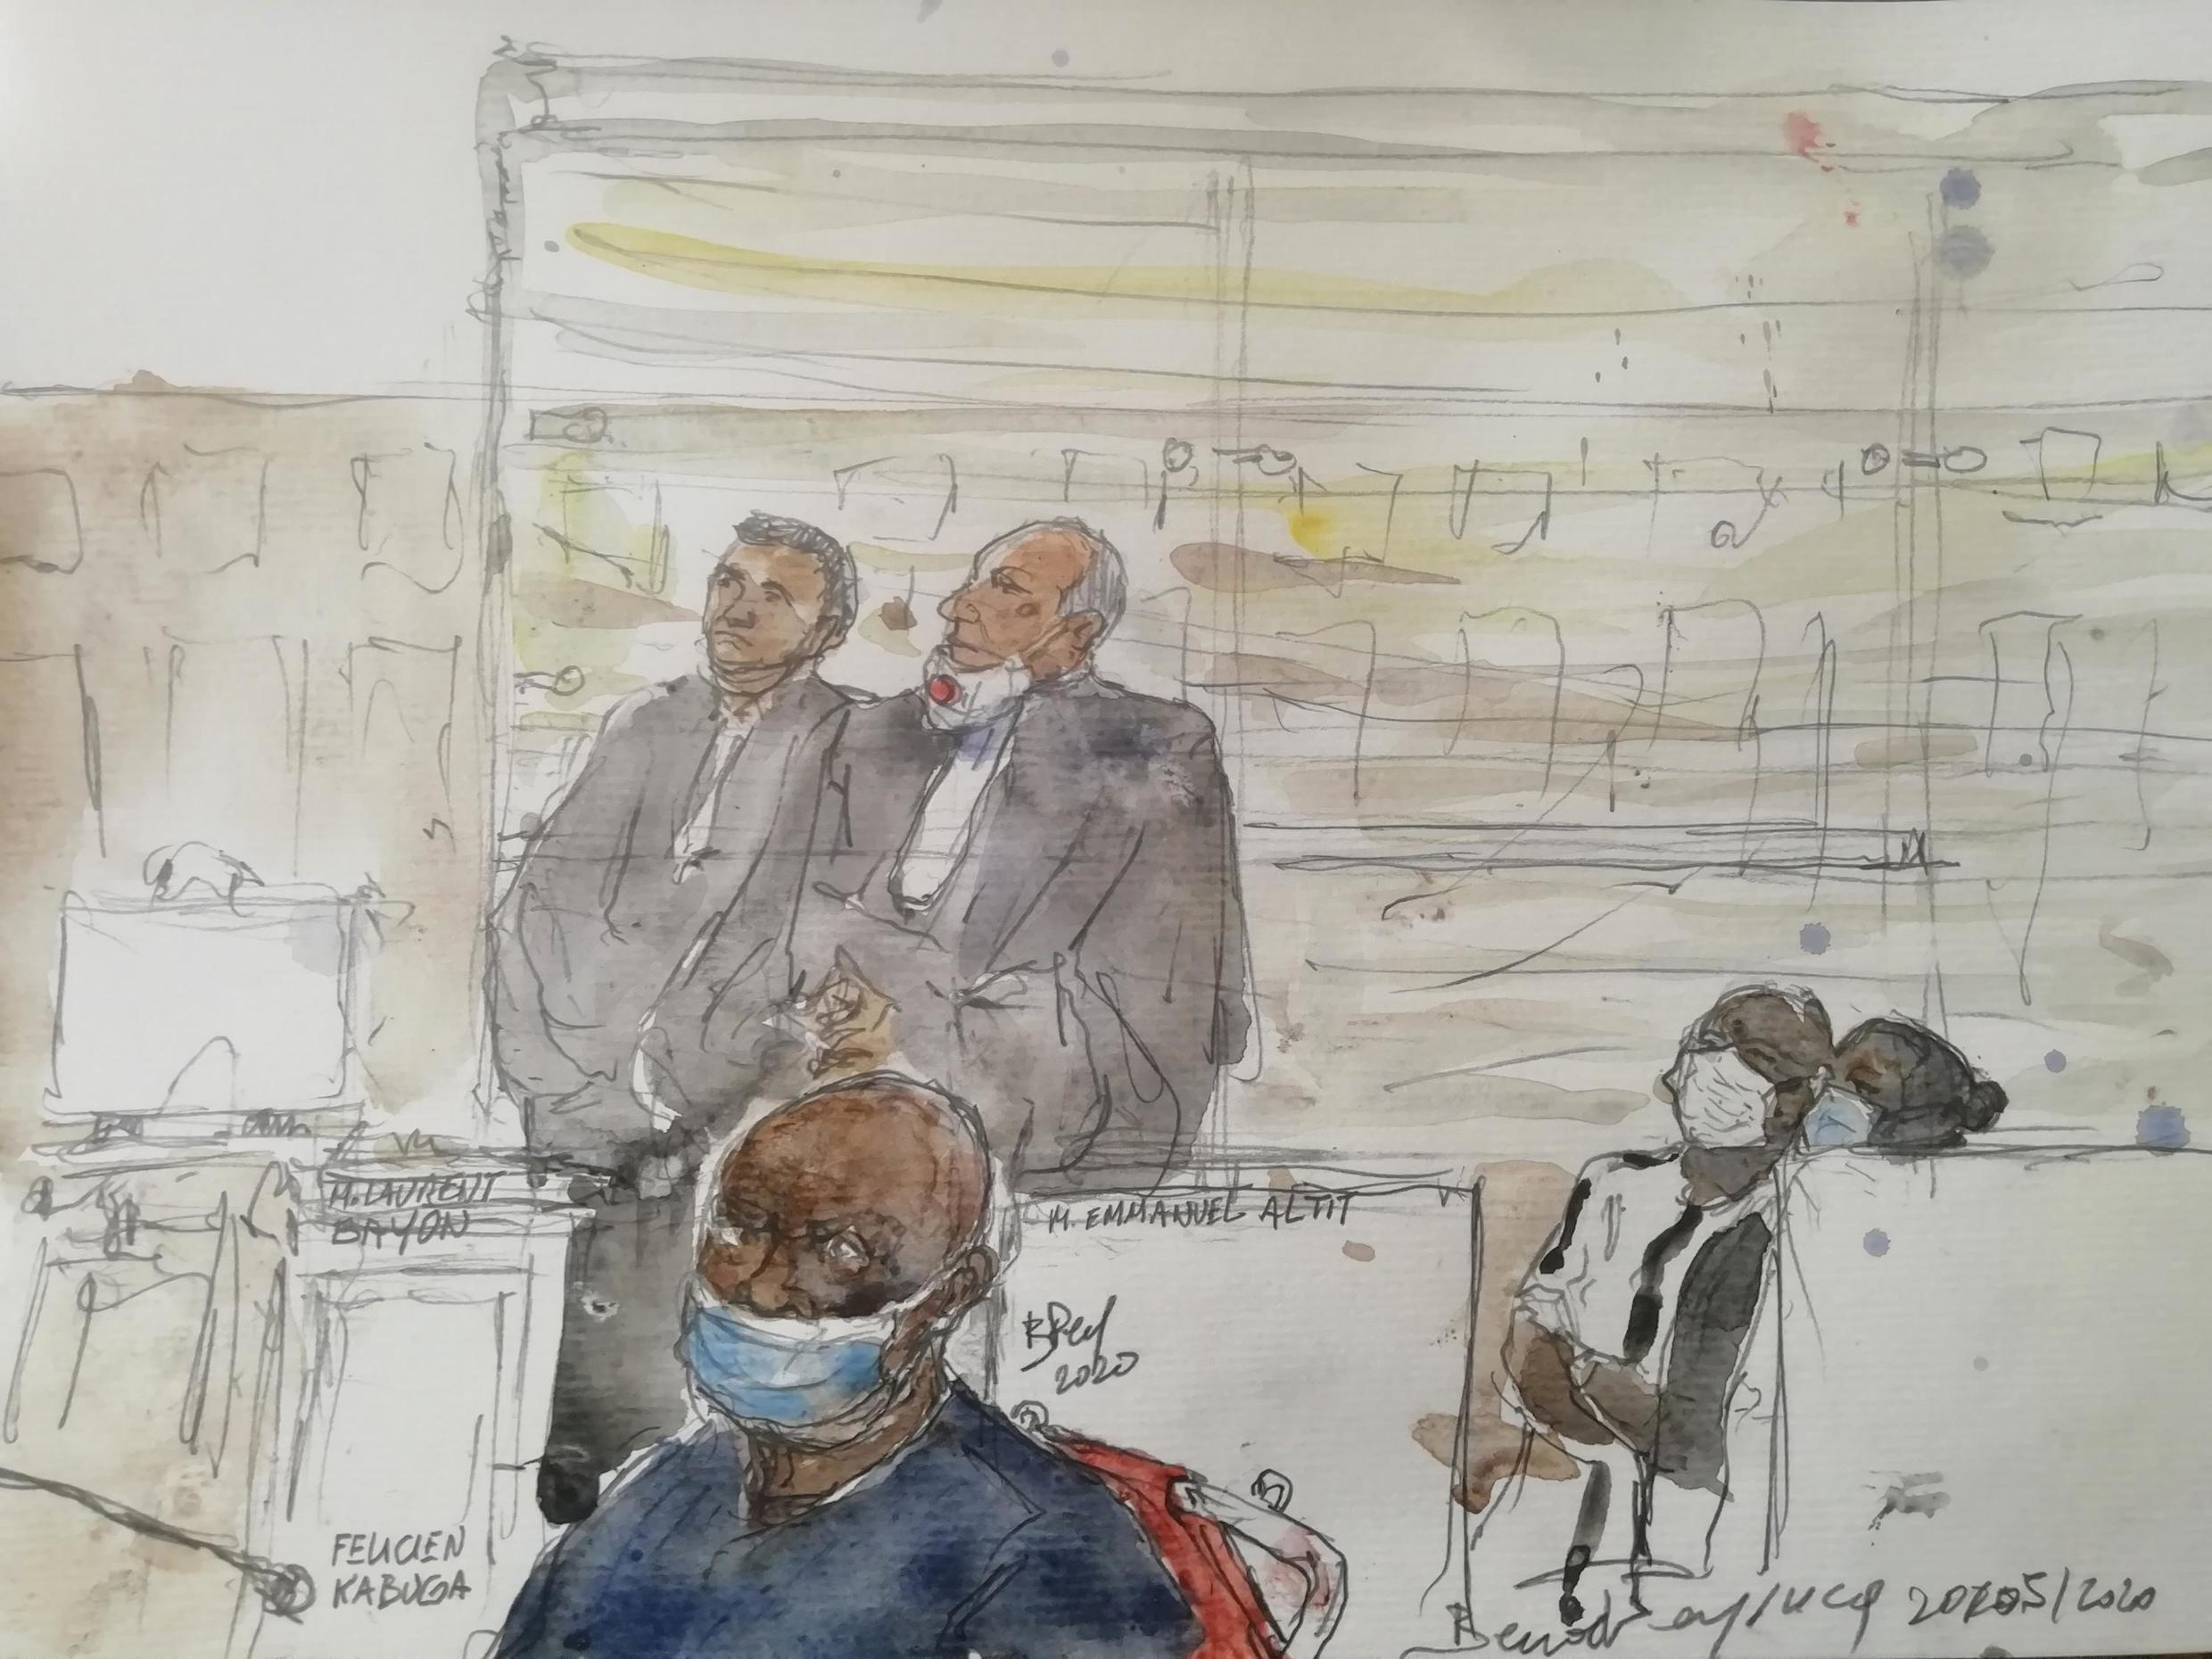 Félicien Kabuga in court on 20 May 2020